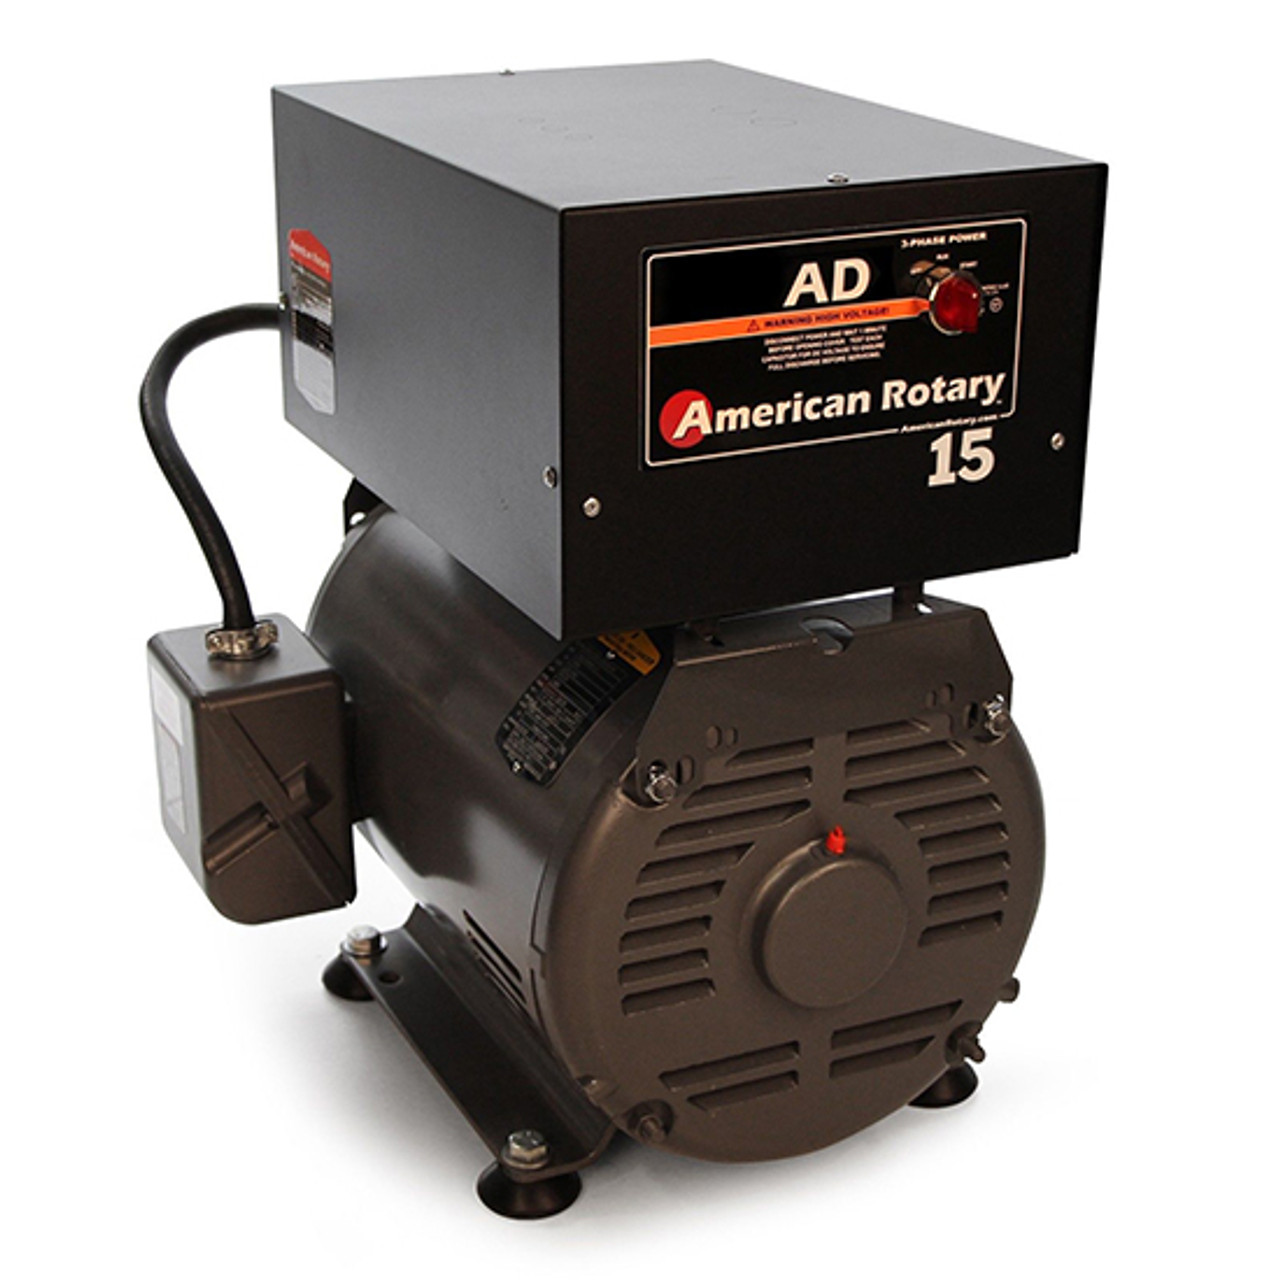 american rotary phase converter wiring diagram 15hp 240v ad series floor mount rotary phase converterrh [ 1280 x 1280 Pixel ]